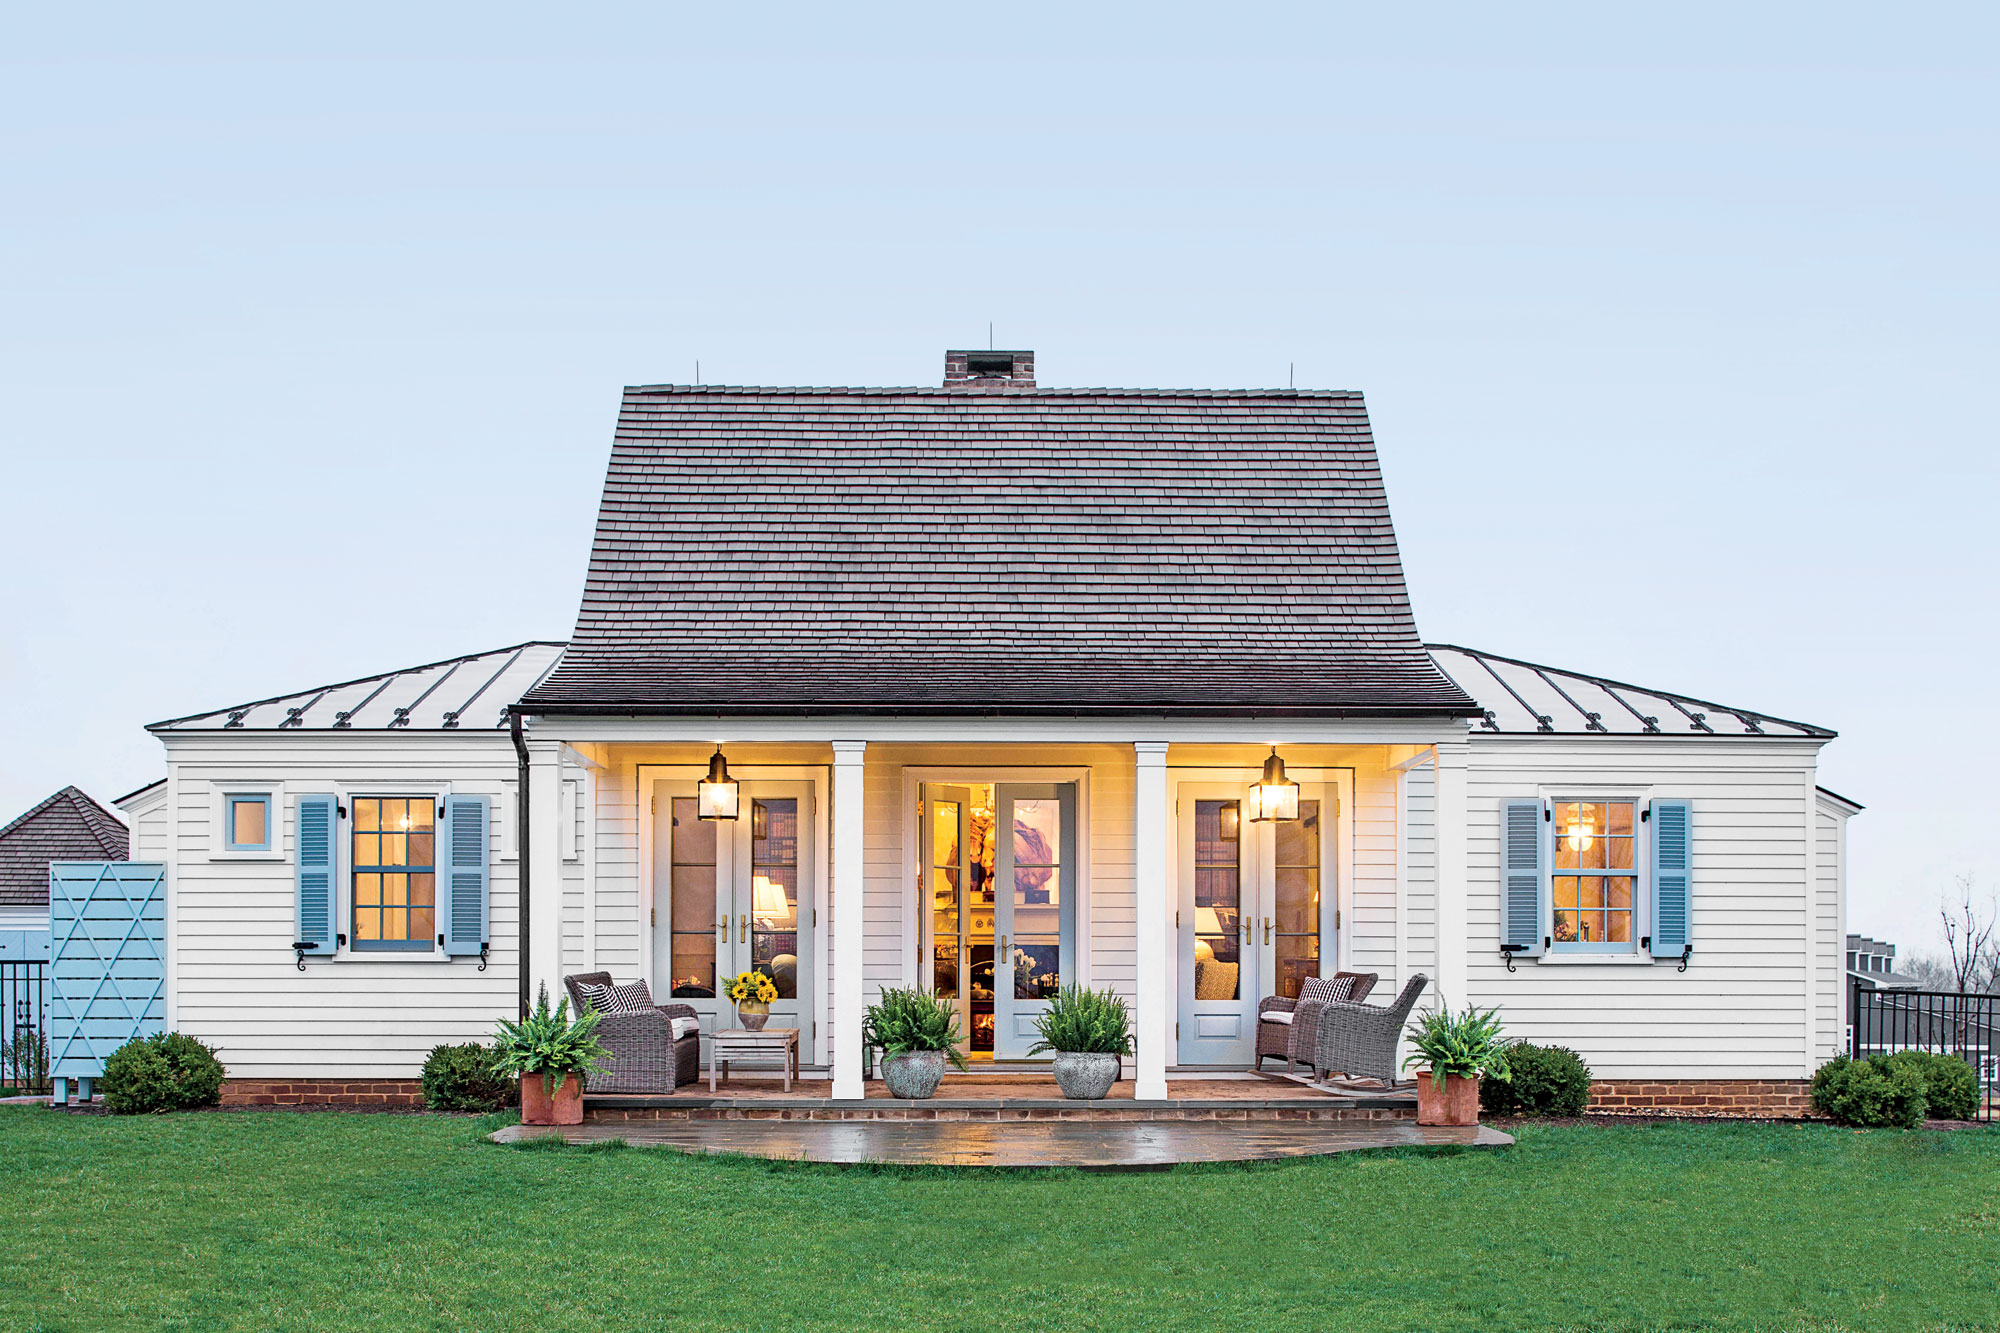 House Plans For Cottages 1500 Square Feet Is The Right Size Southern Living